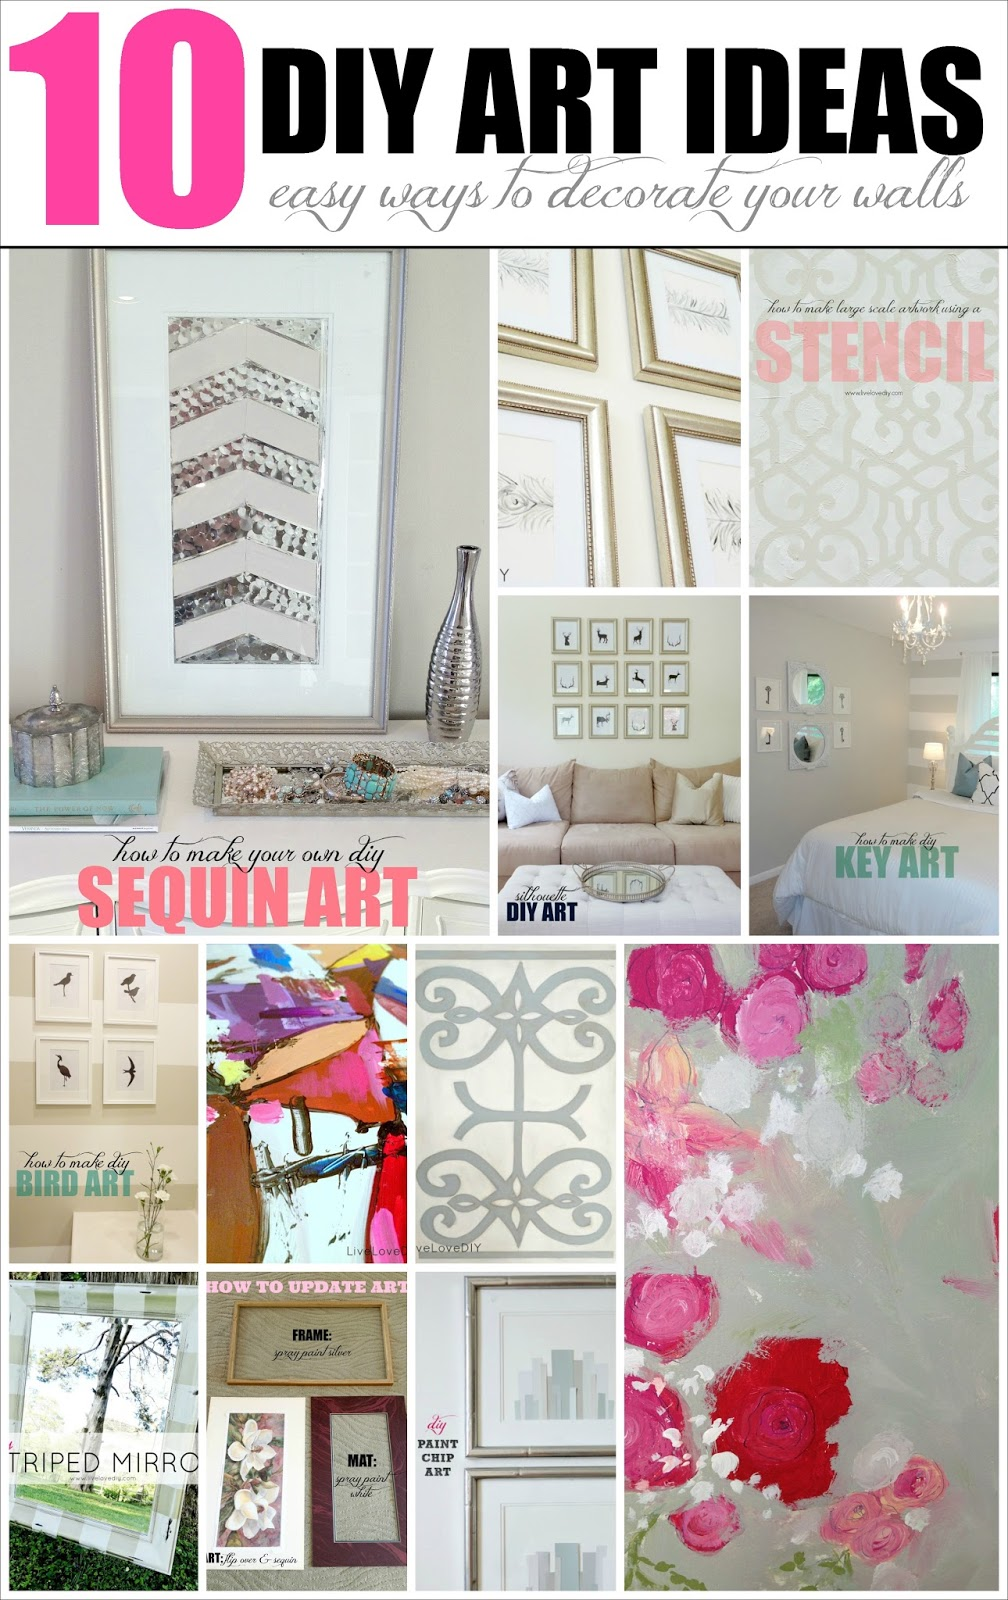 Livelovediy 10 diy art ideas easy ways to decorate your walls follow solutioingenieria Choice Image